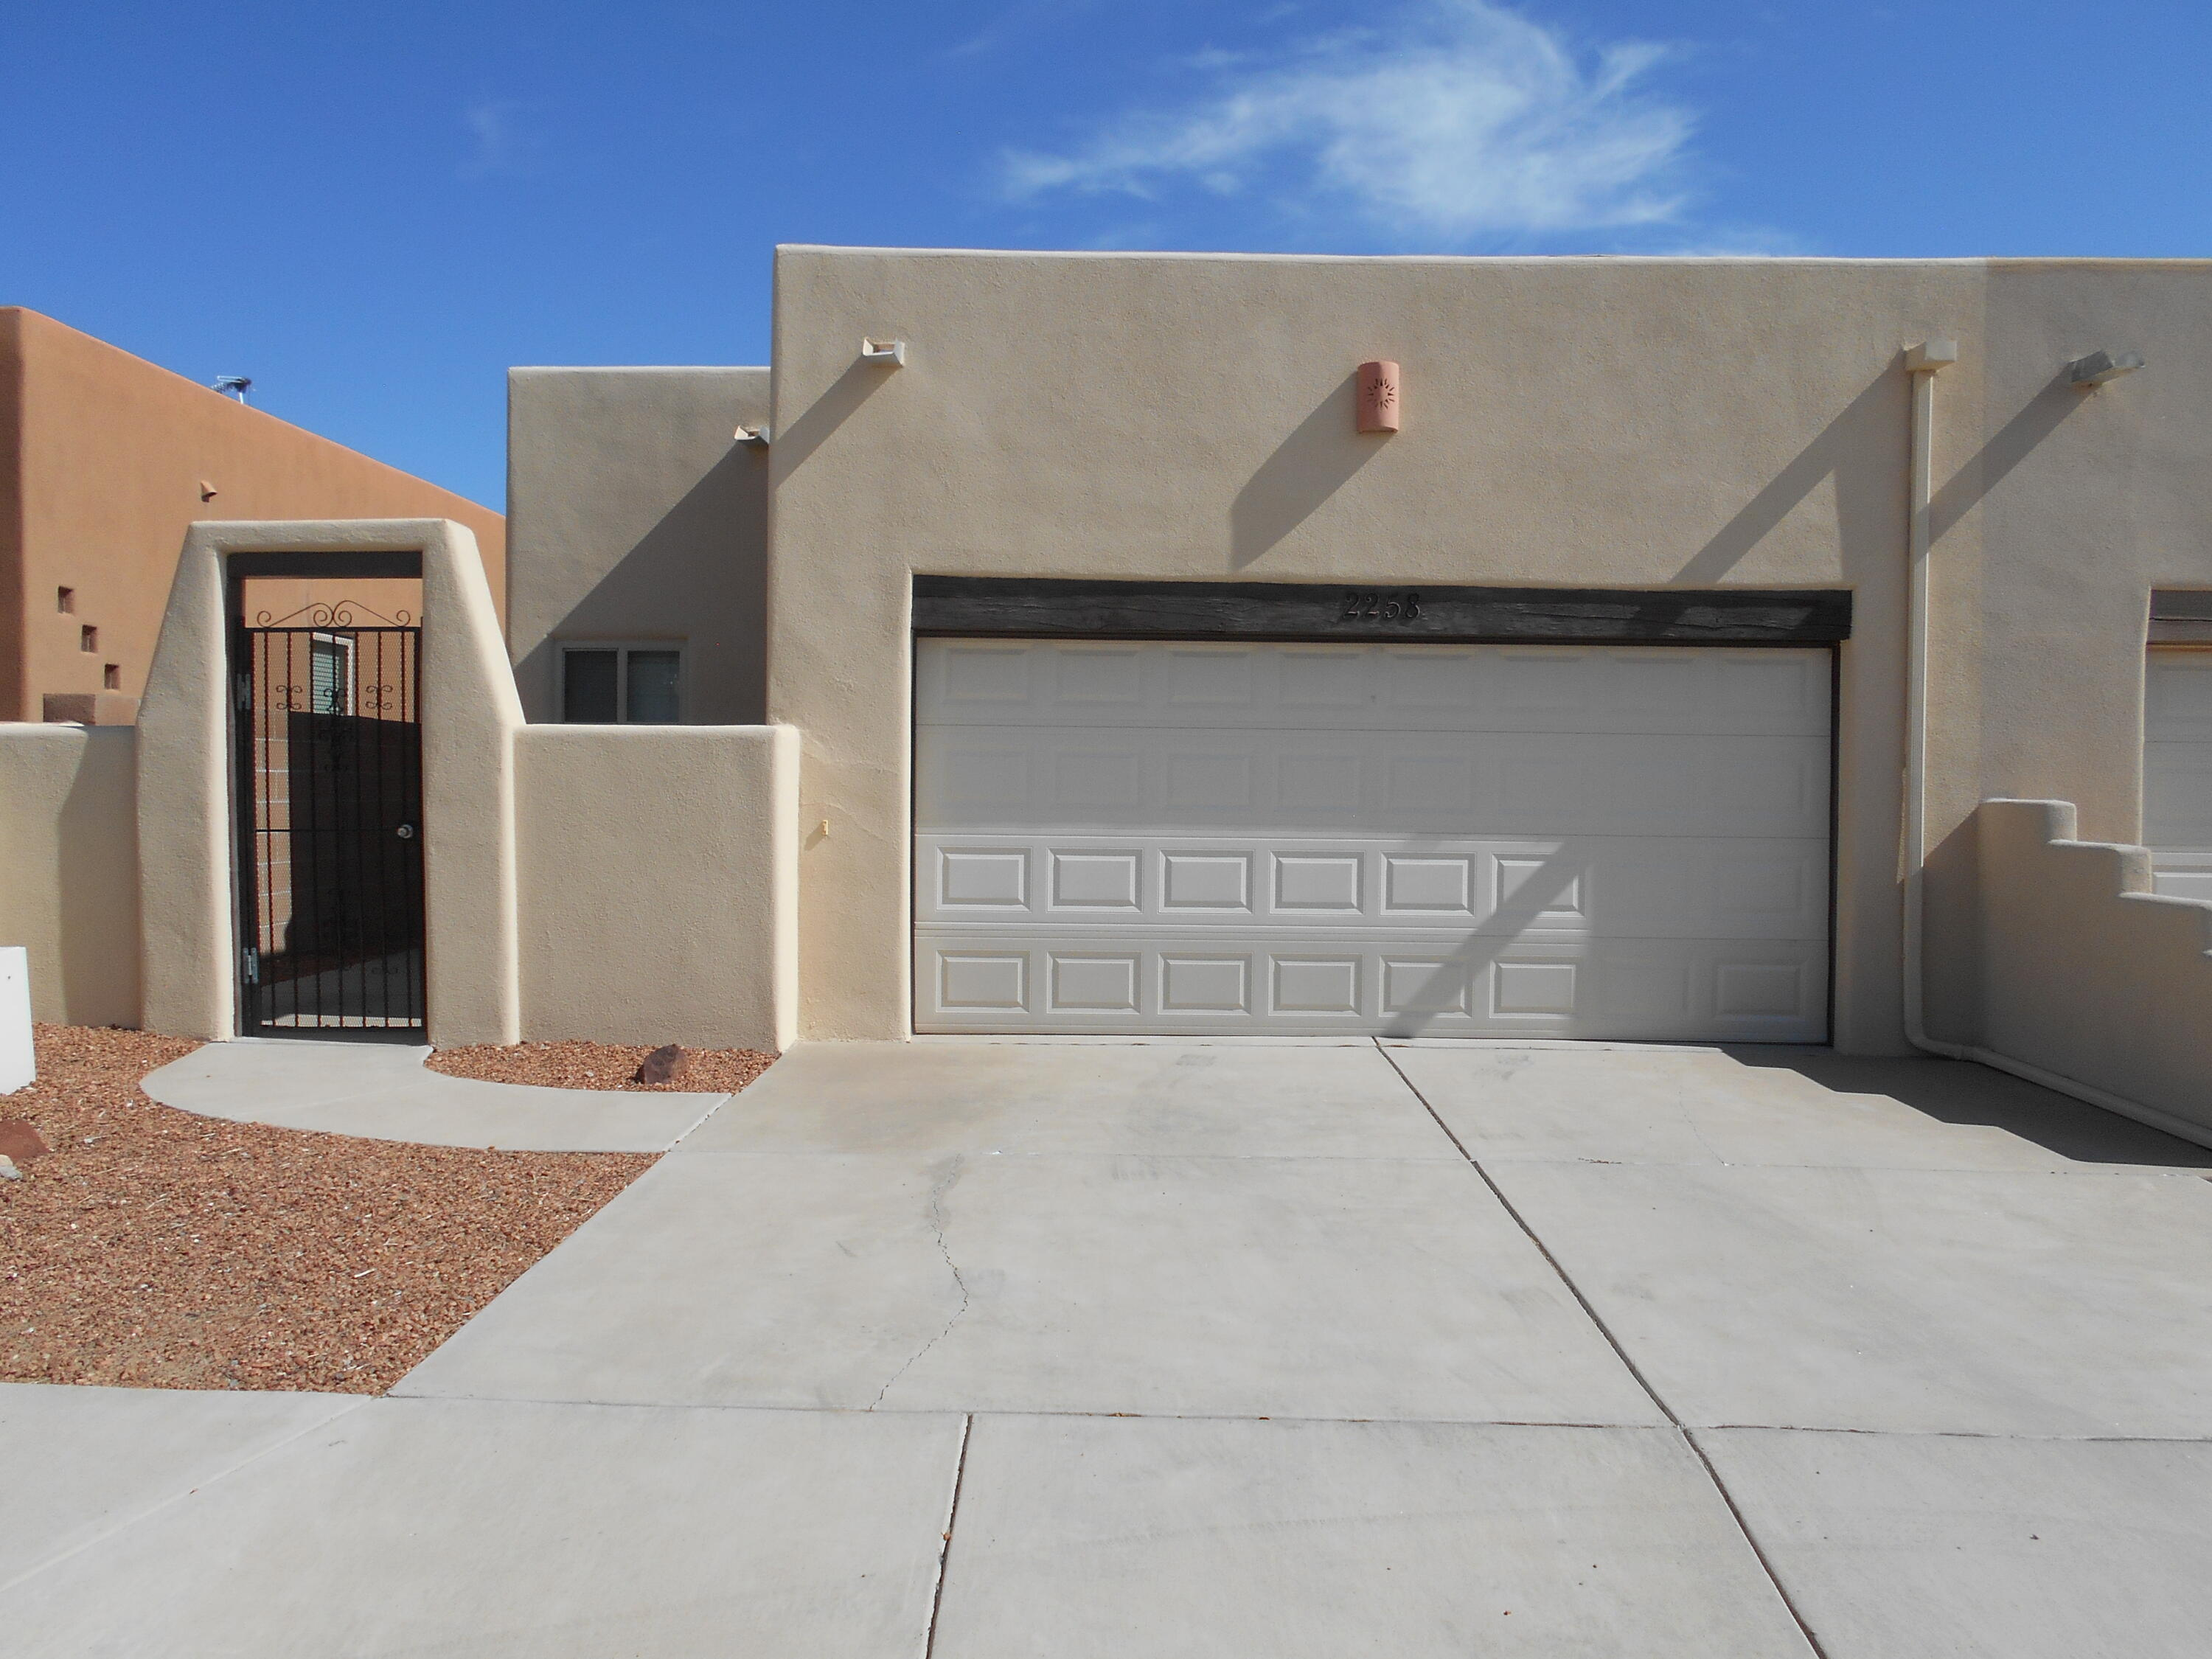 Gorgeous Pueblo style townhouse in a gated community. Exquisite beamed tongue & groove ceiling in LR. Laminate flooring in kitchen , dining room, and hallway. Tile in bathrooms. Carpet in LR and 2 bedrooms. Tile counter tops in kitchen. Beautiful cabinets in kitchen and bathrooms. Double vanity, shower and linen cabinet in MB bathroom. Pocket doors in second bathroom. Gas log fireplace. Skylights. Nicely landscaped. Covered patio. New TPO roof installed in December 2020 ( warranty included). Stucco repainted in July 2021. Attached townhome. 2 car garage. There are 2 wall heaters in the garage.